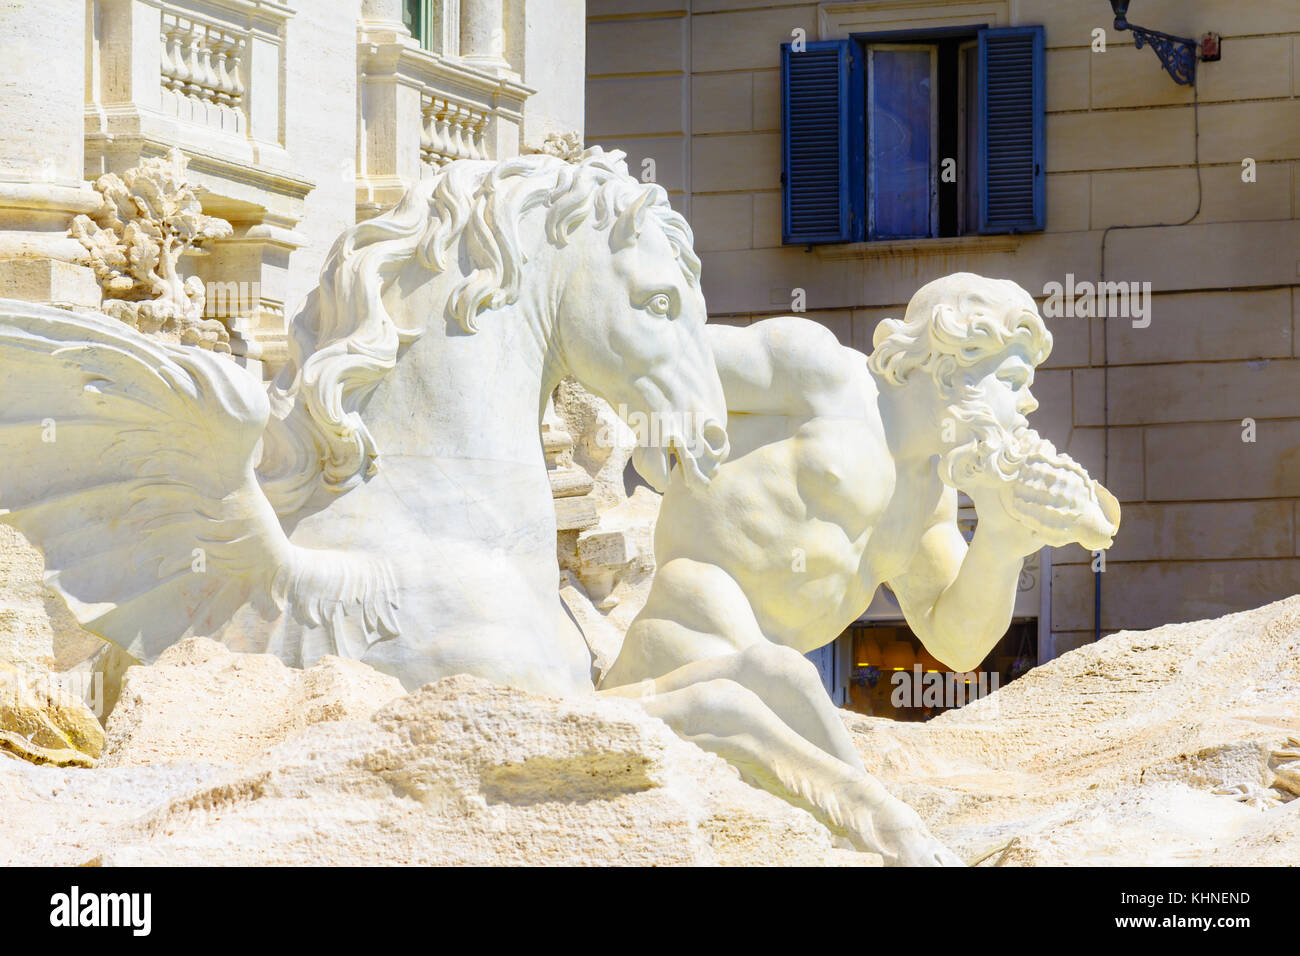 Architectural detail of Trevi Fountain ,Fontana di Trevi, a fountain in the Trevi rione in Rome, Italy, the largest - Stock Image